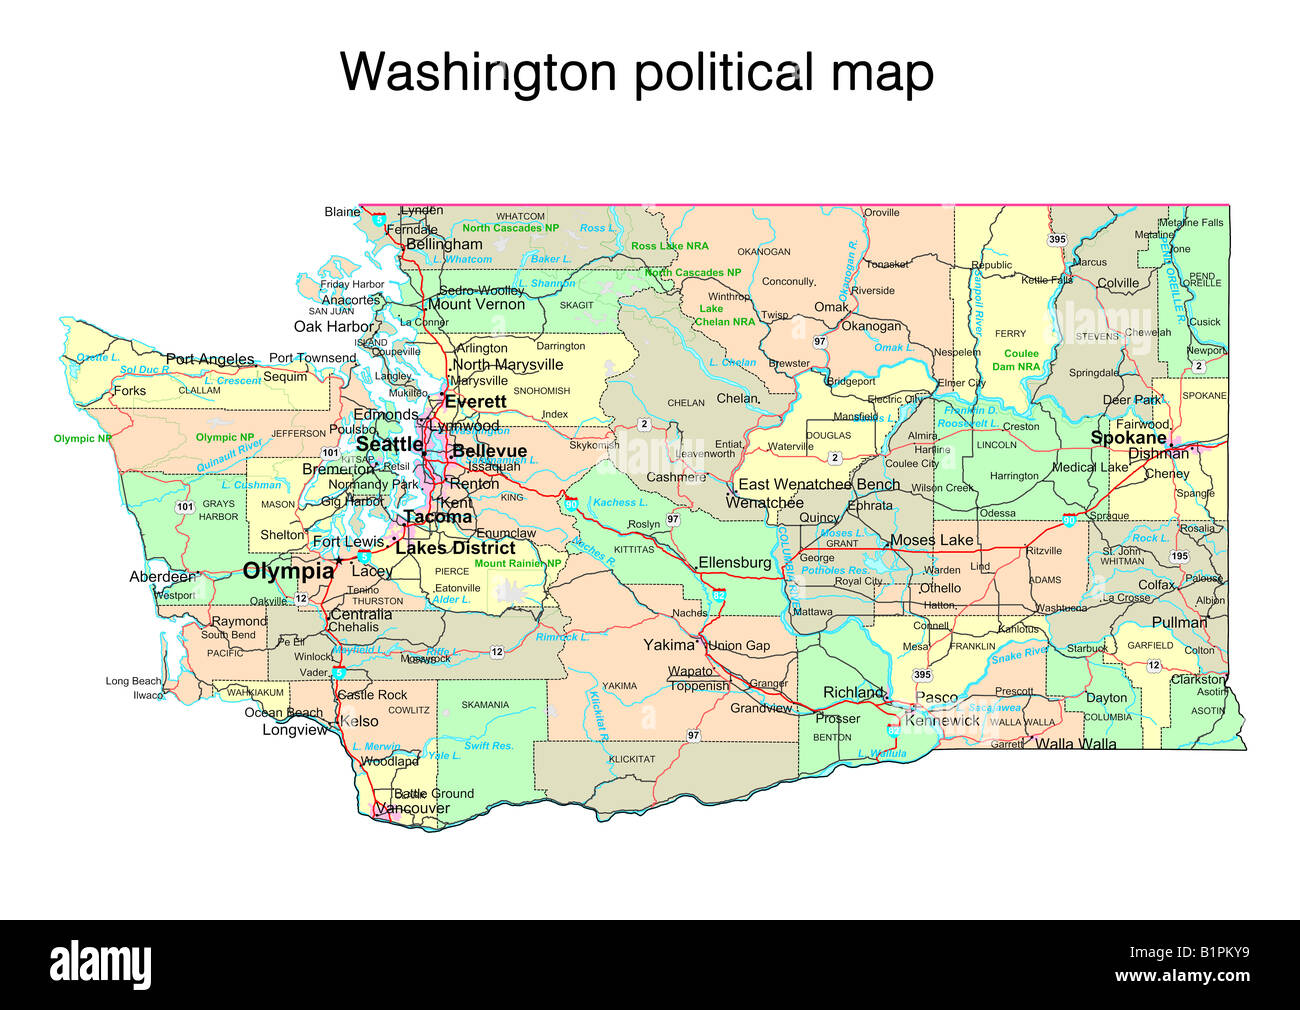 Washington State Map Stockfotos & Washington State Map Bilder ...